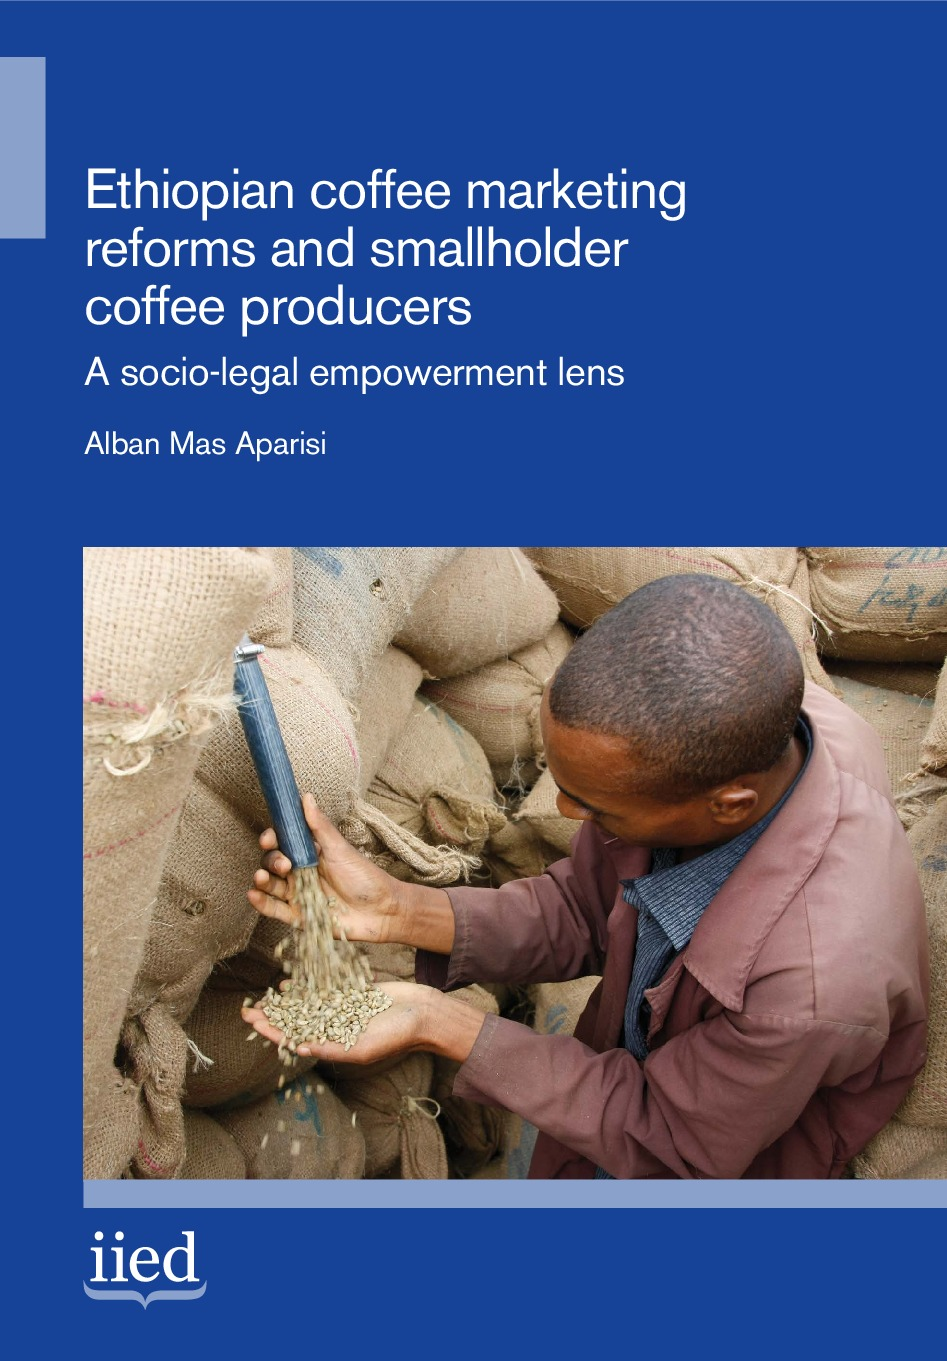 Ethiopian coffee marketing reforms and smallholder coffee producers: A socio-legal empowerment lens